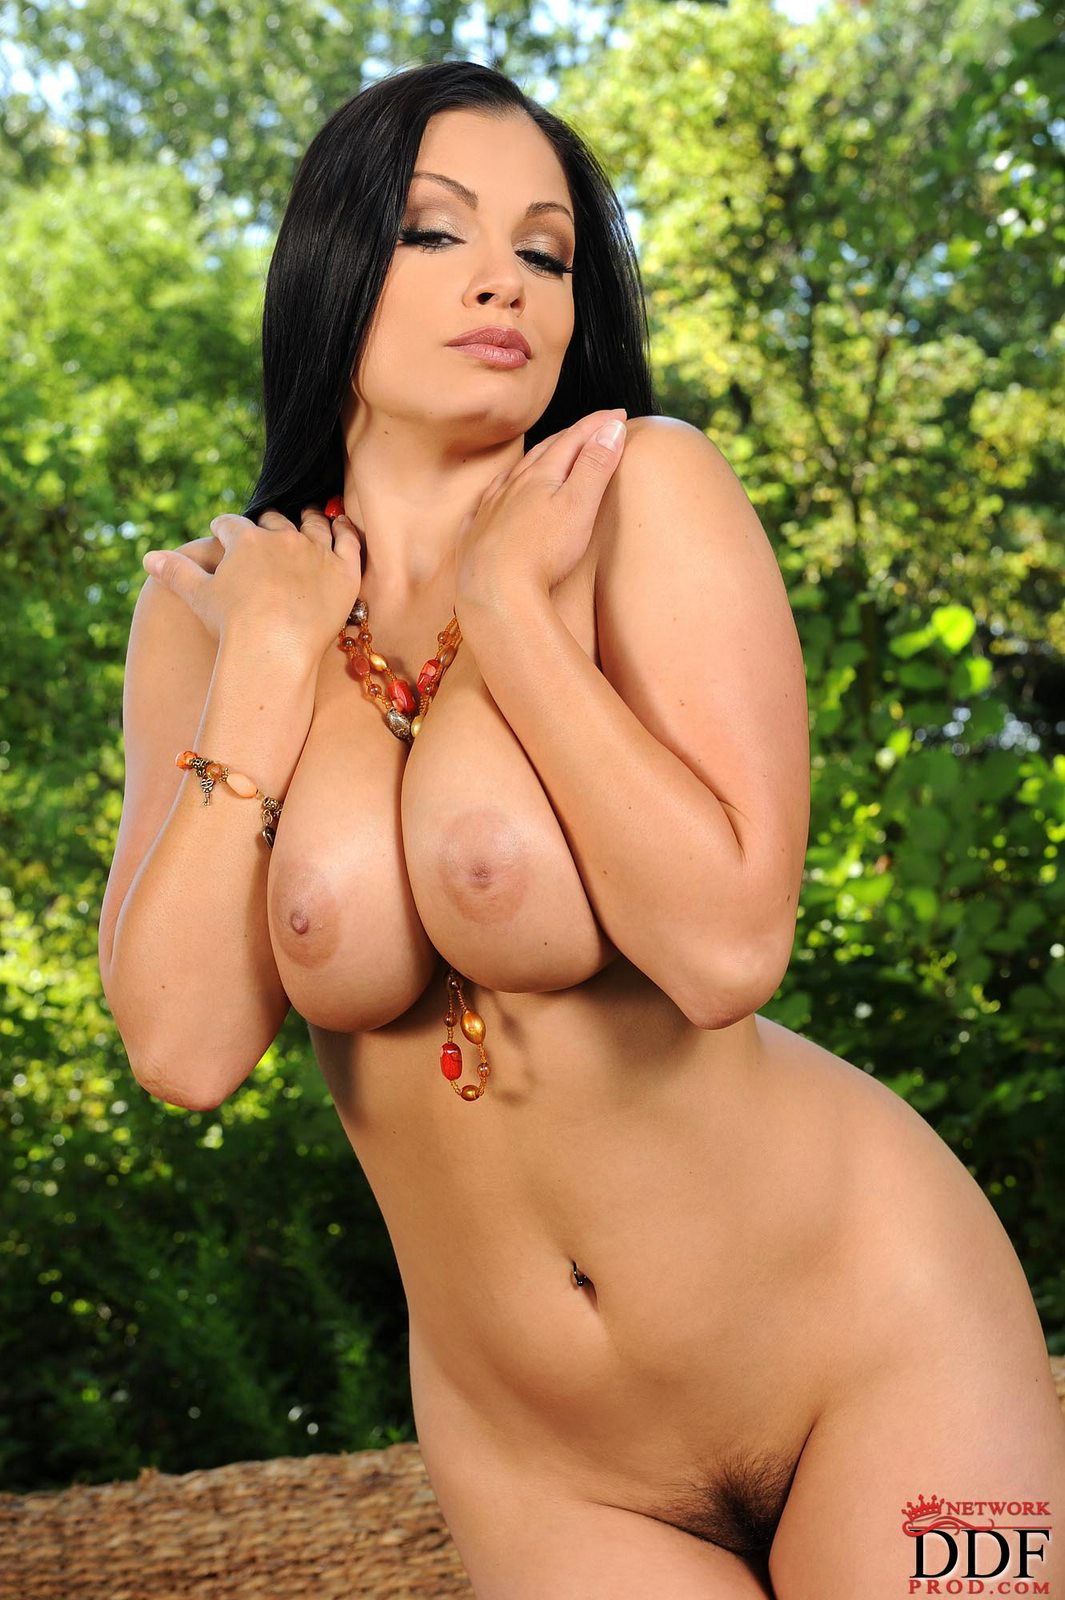 Aria giovanni stunning body in one of her first photo shoots 8